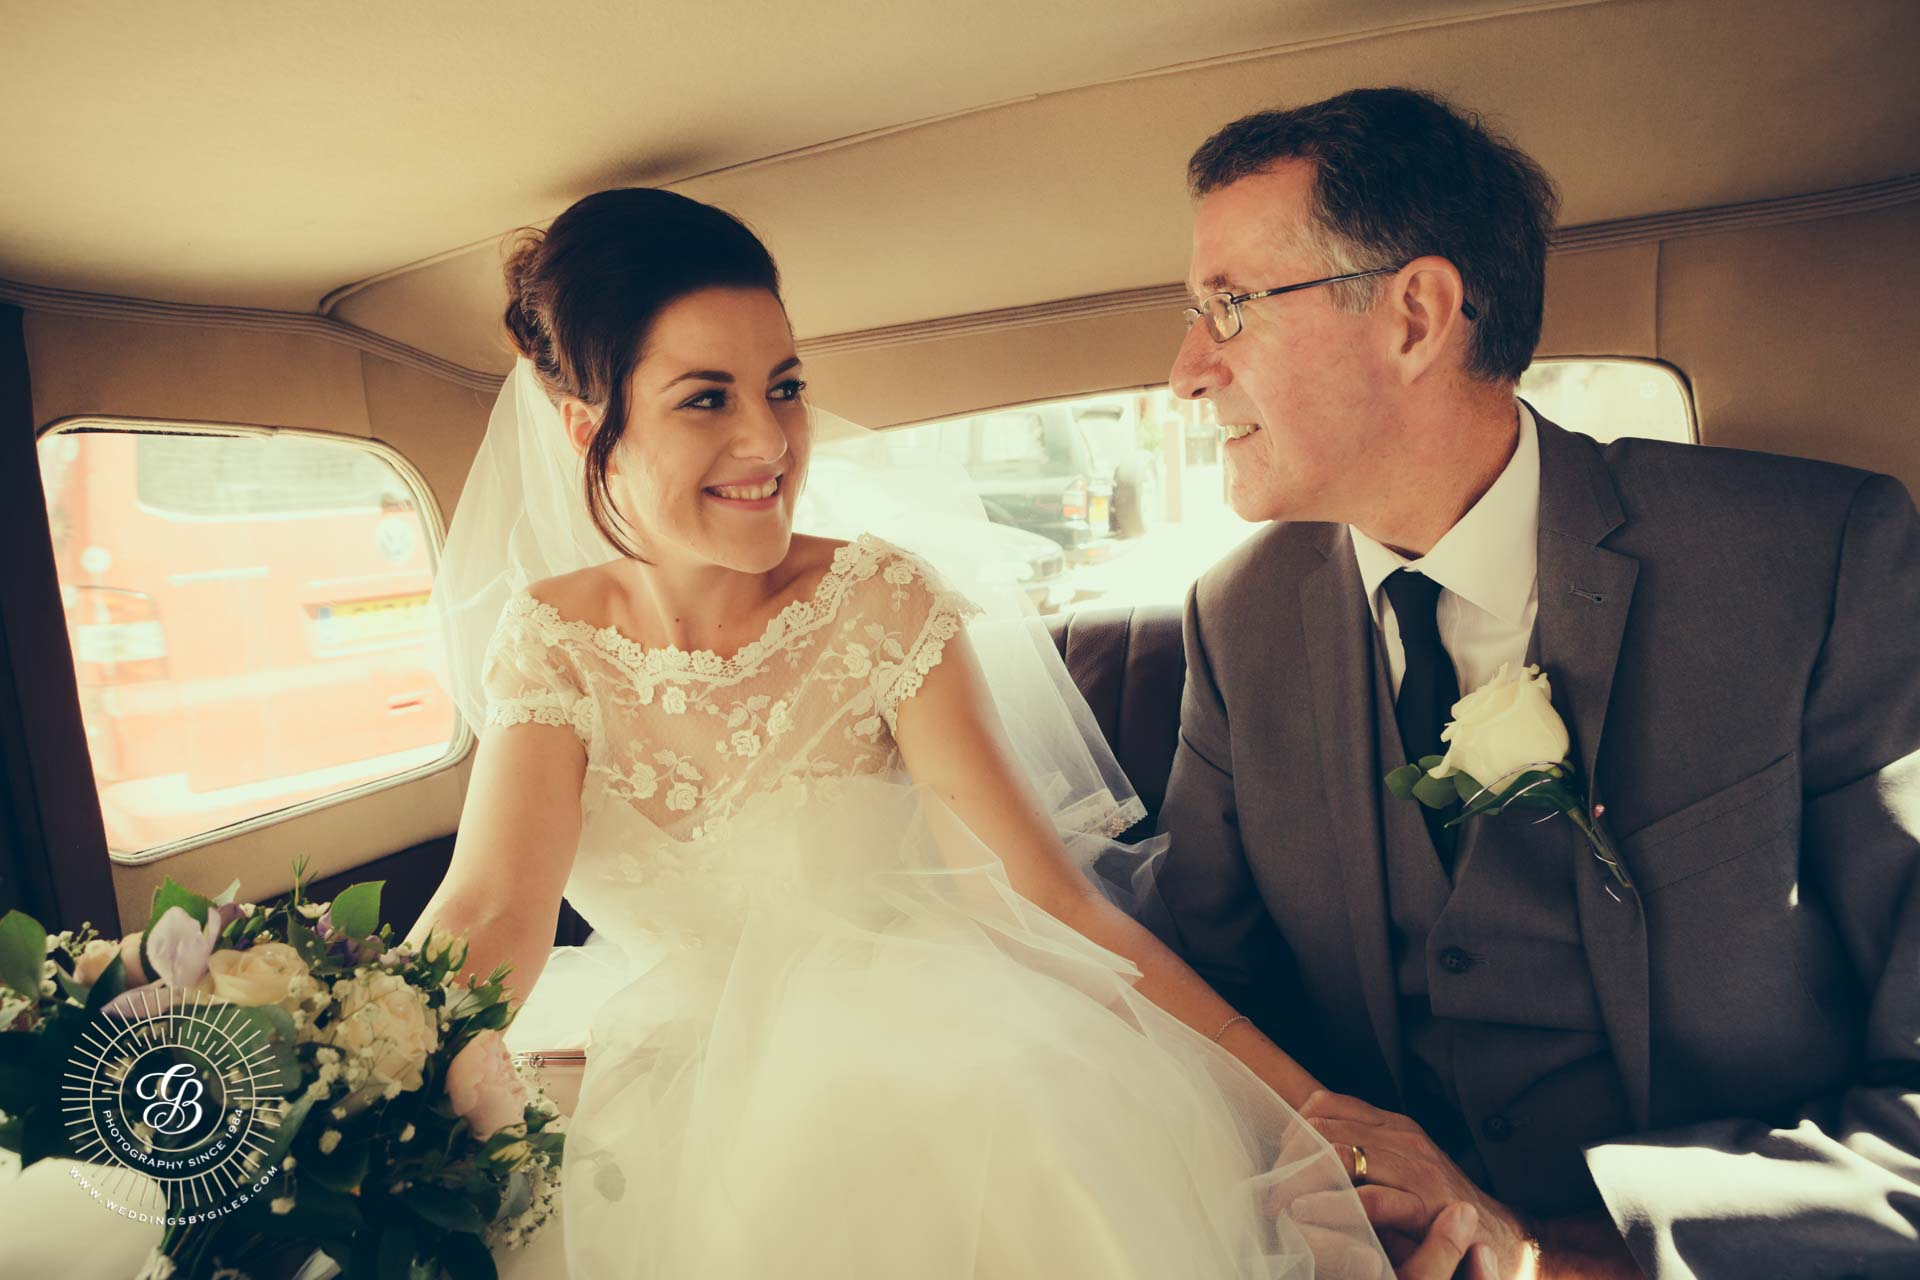 Bride and her father in Vintage wedding car